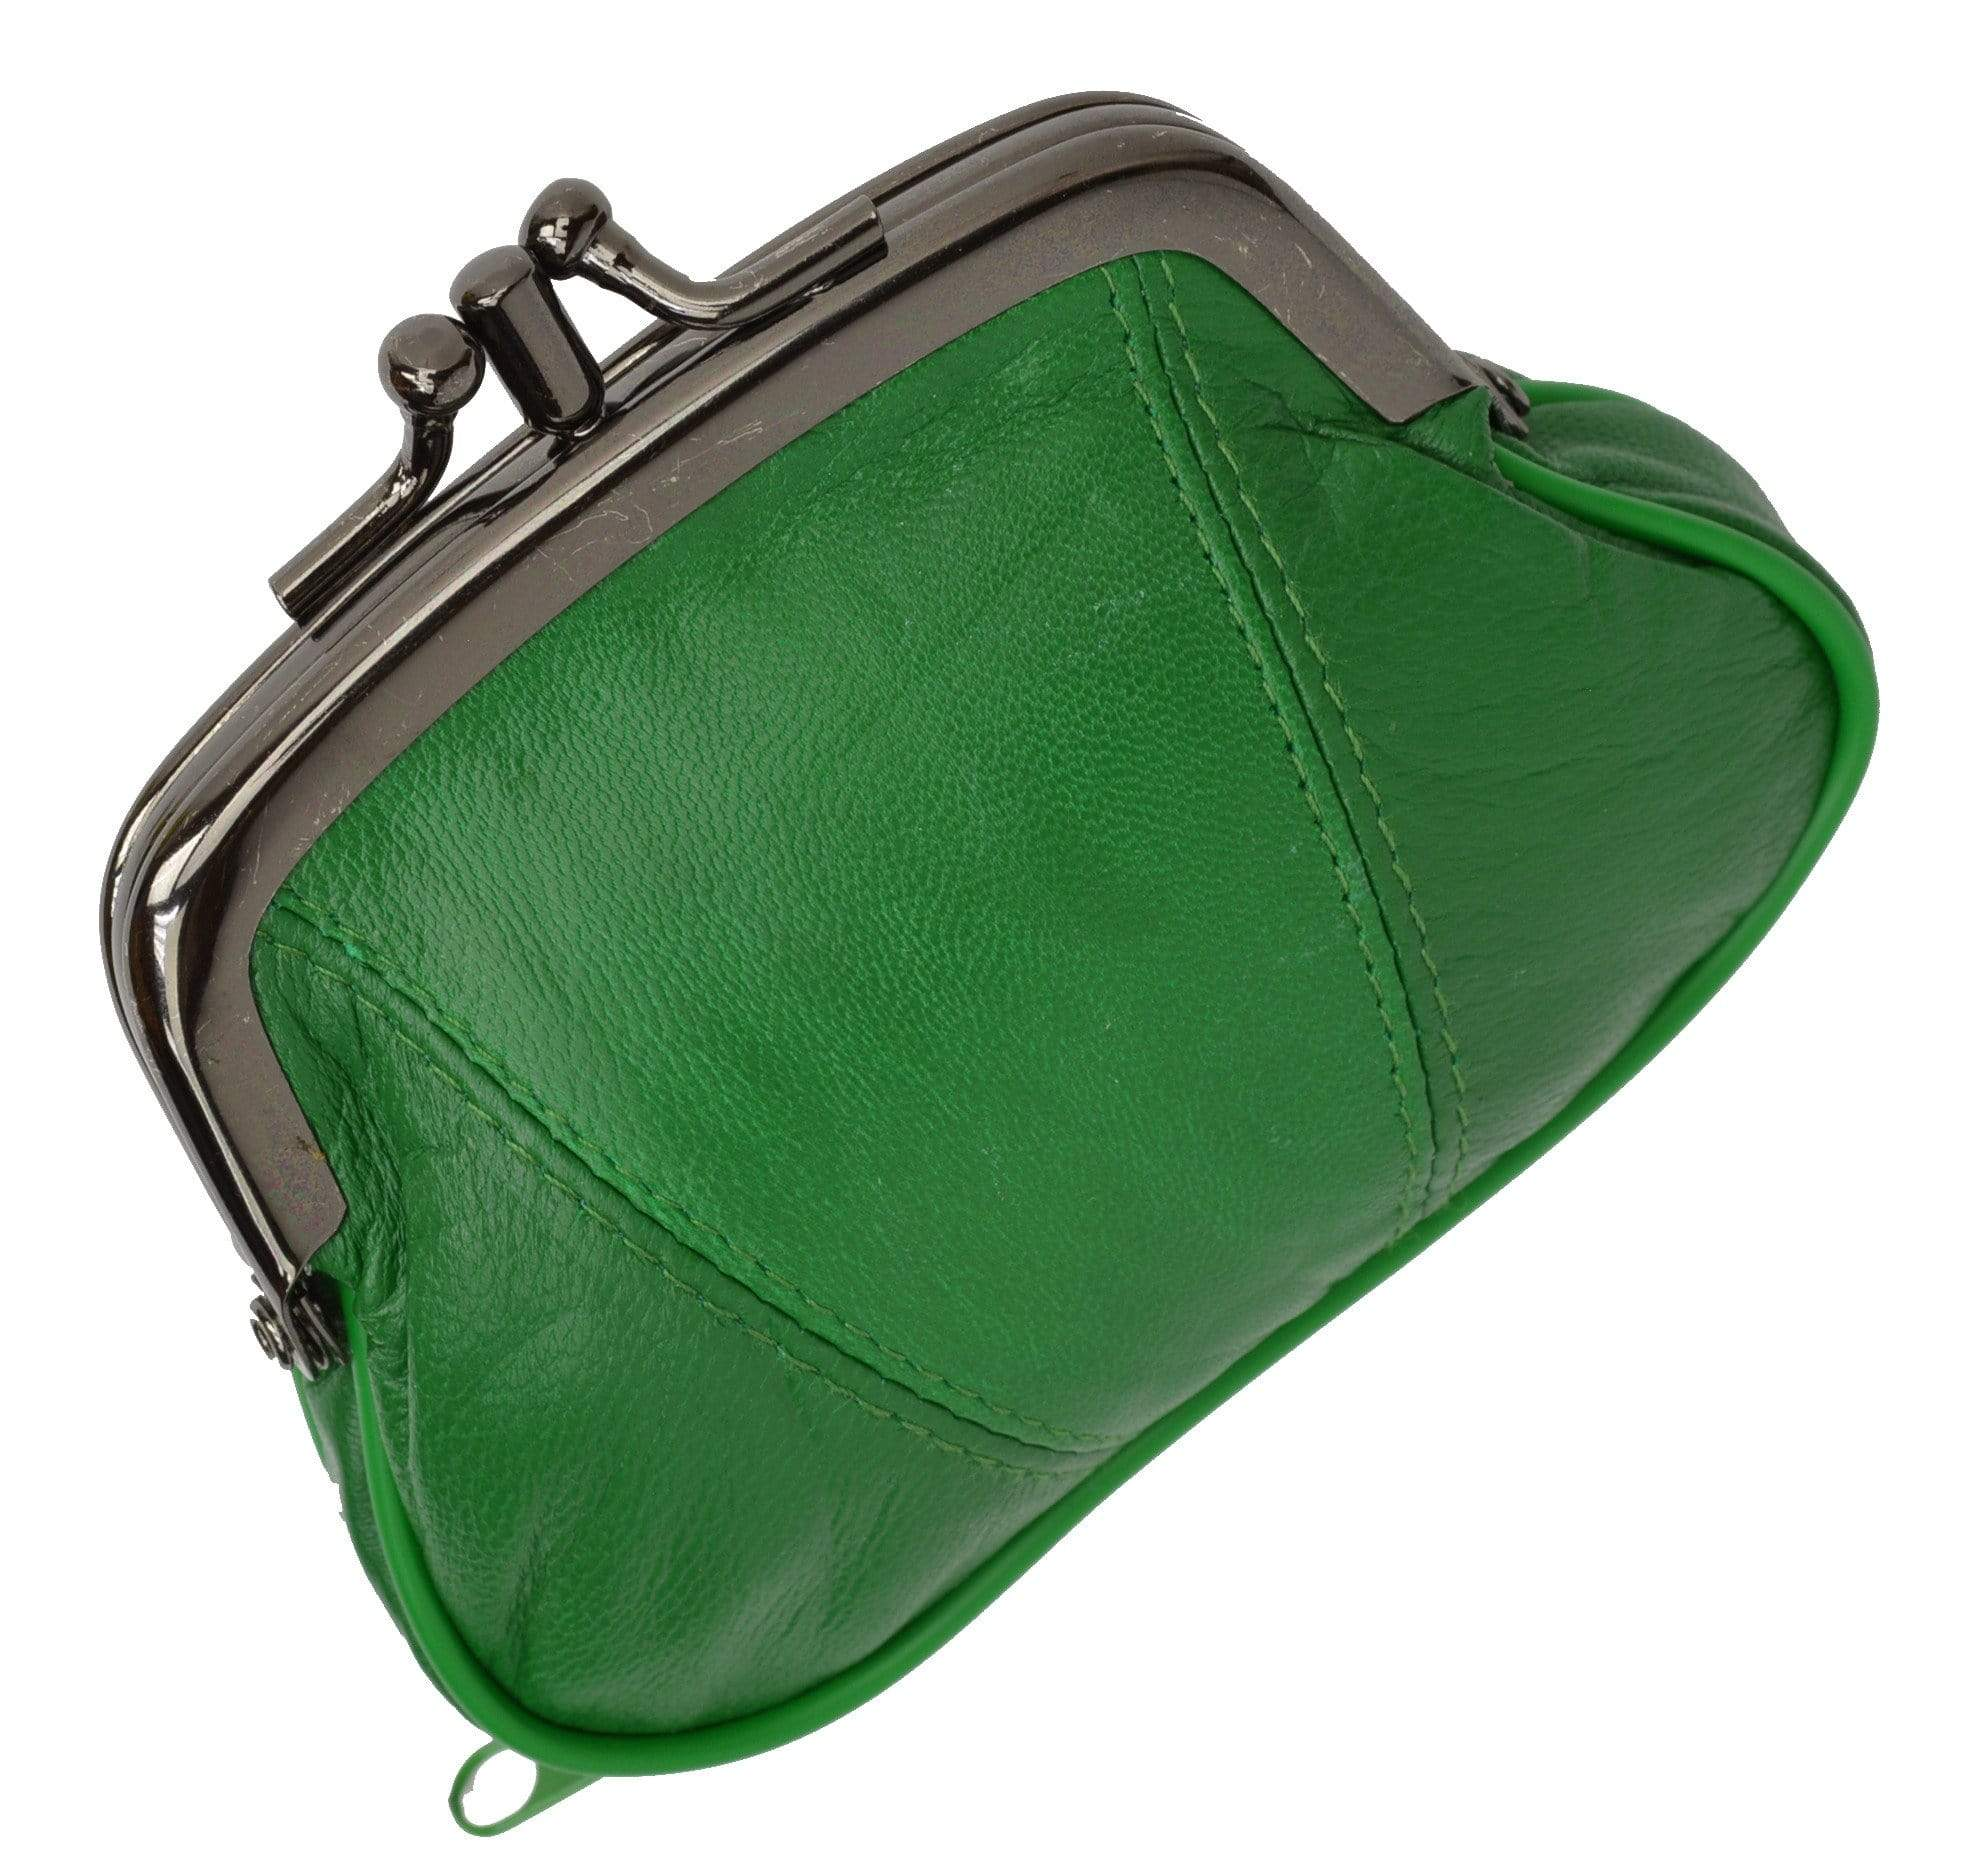 09481abd01f Leather Small Change Purse Double Frame with Zipper Pocket Y022 (C ...